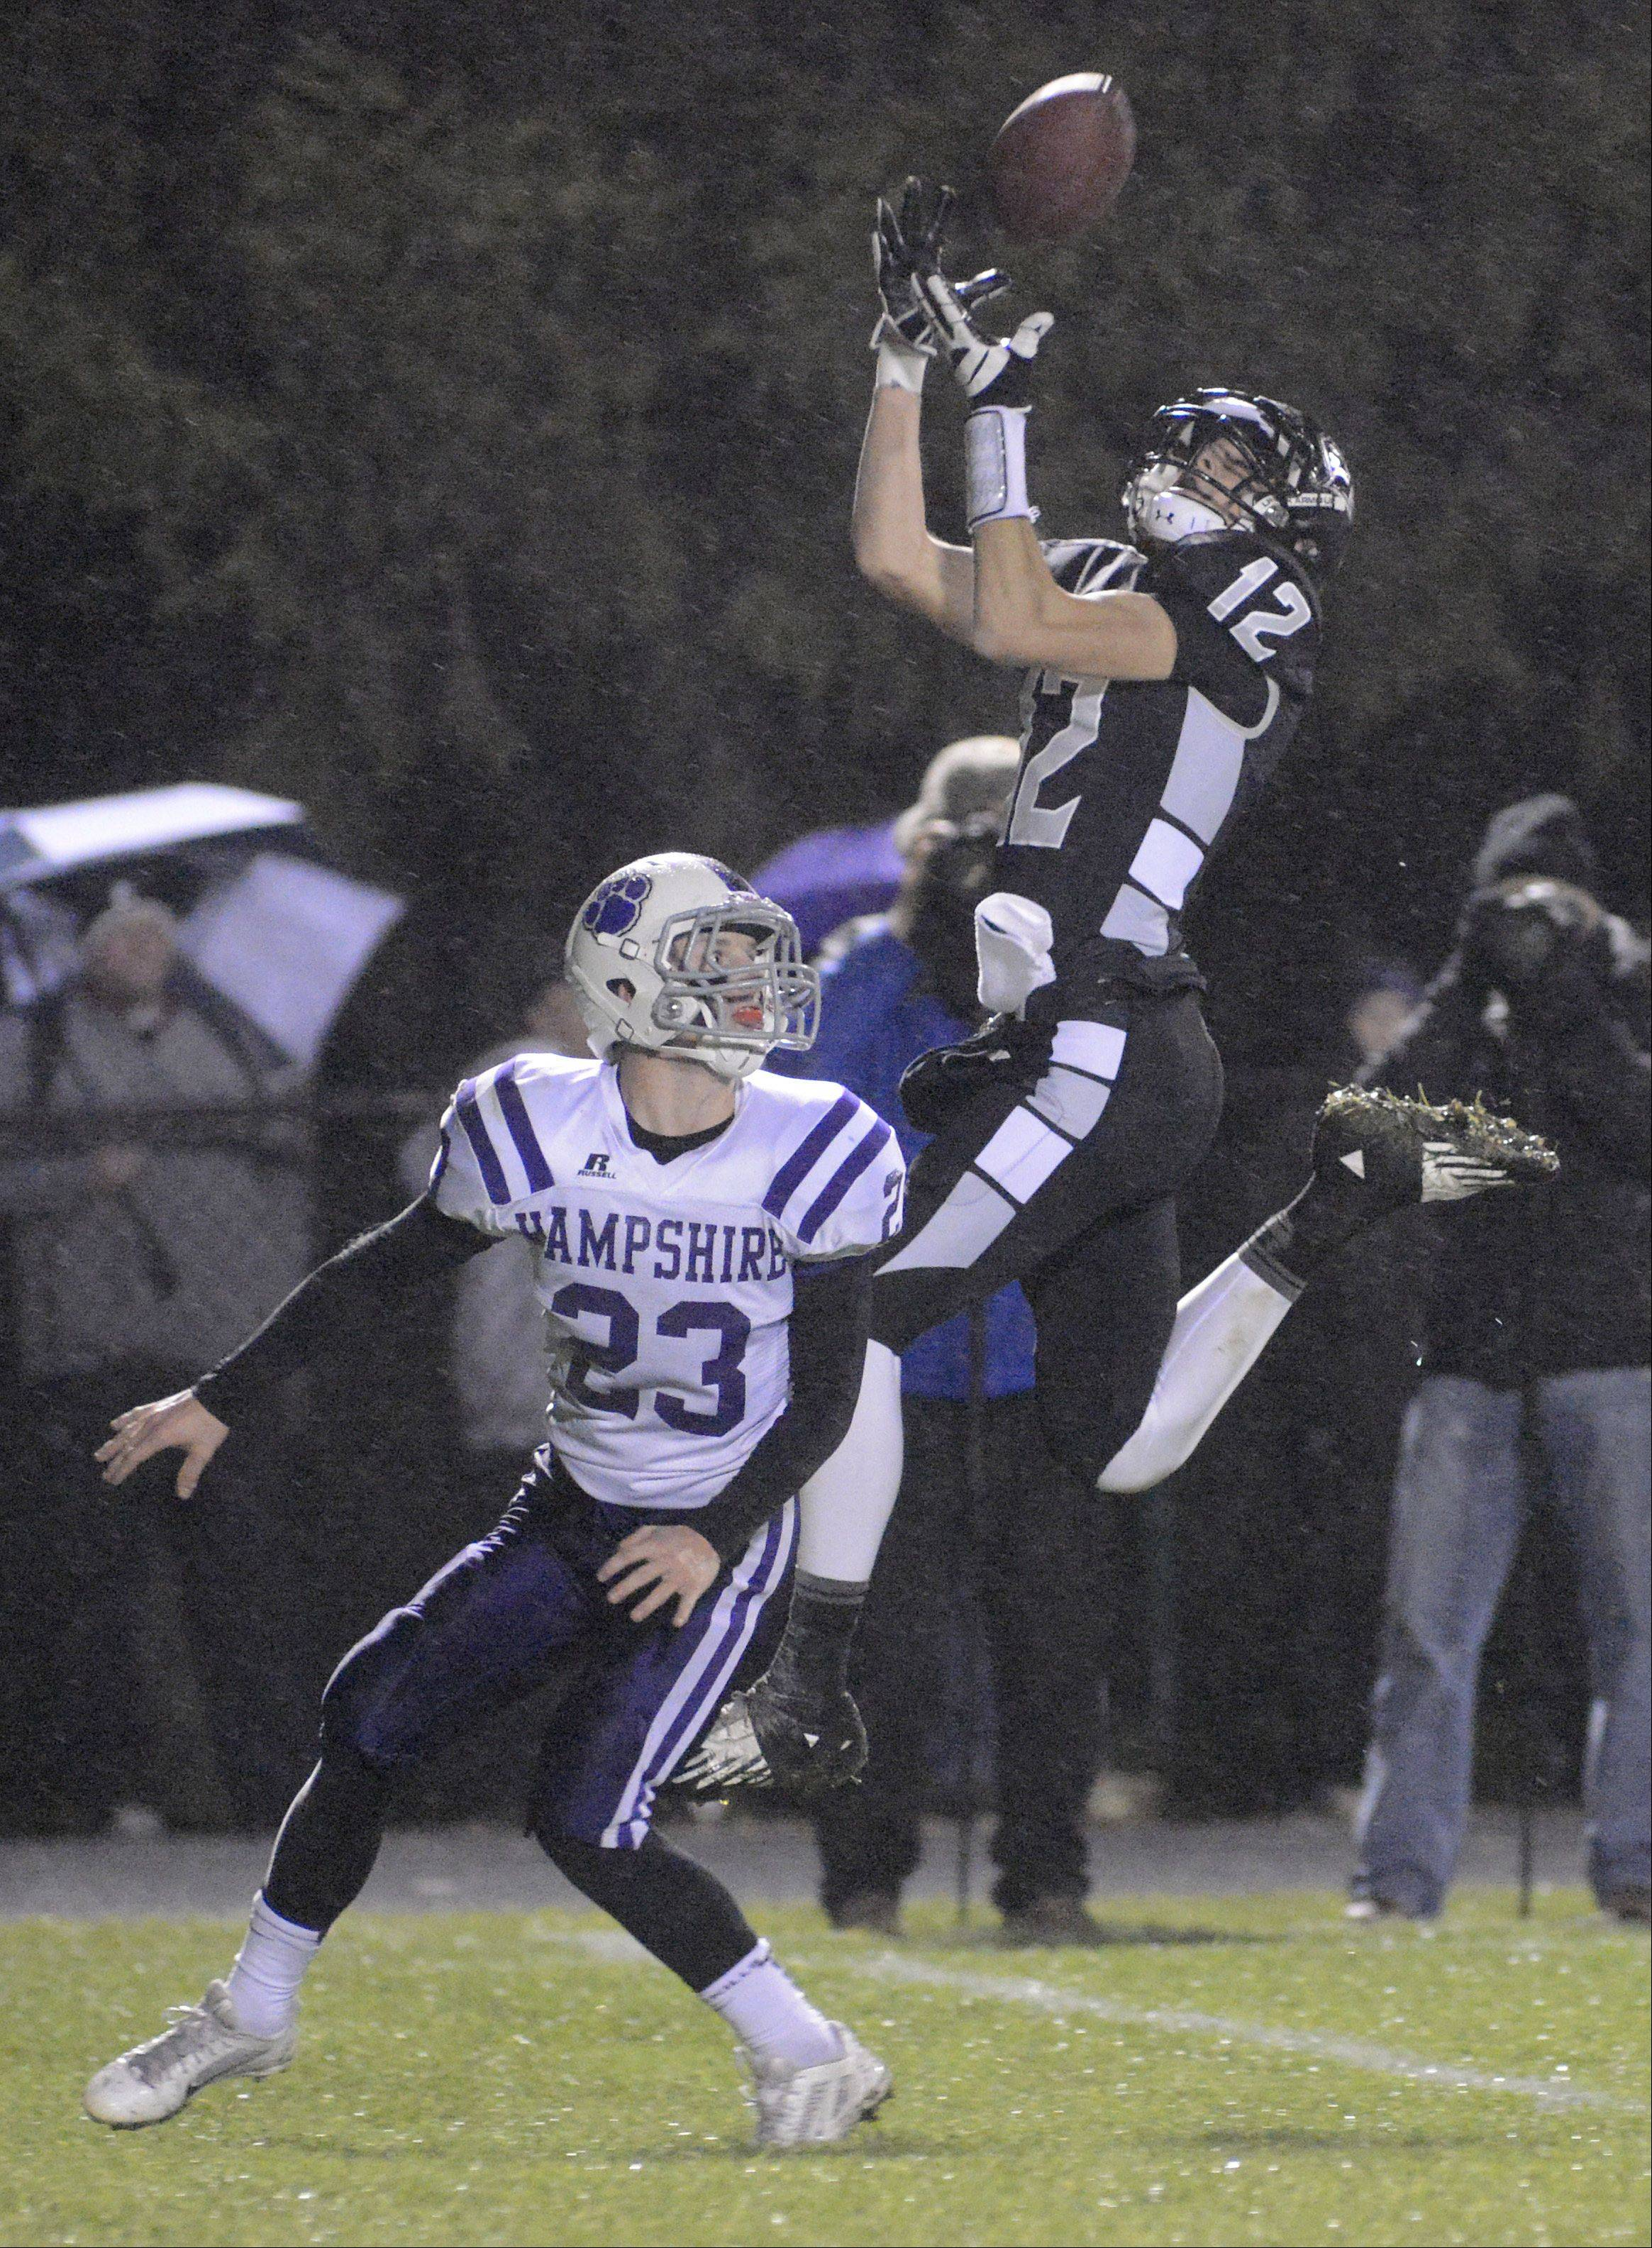 Kaneland's John Pruett leaps to complete a pass, but is taken down by Hampshire's Trey Schramm in the first quarter.